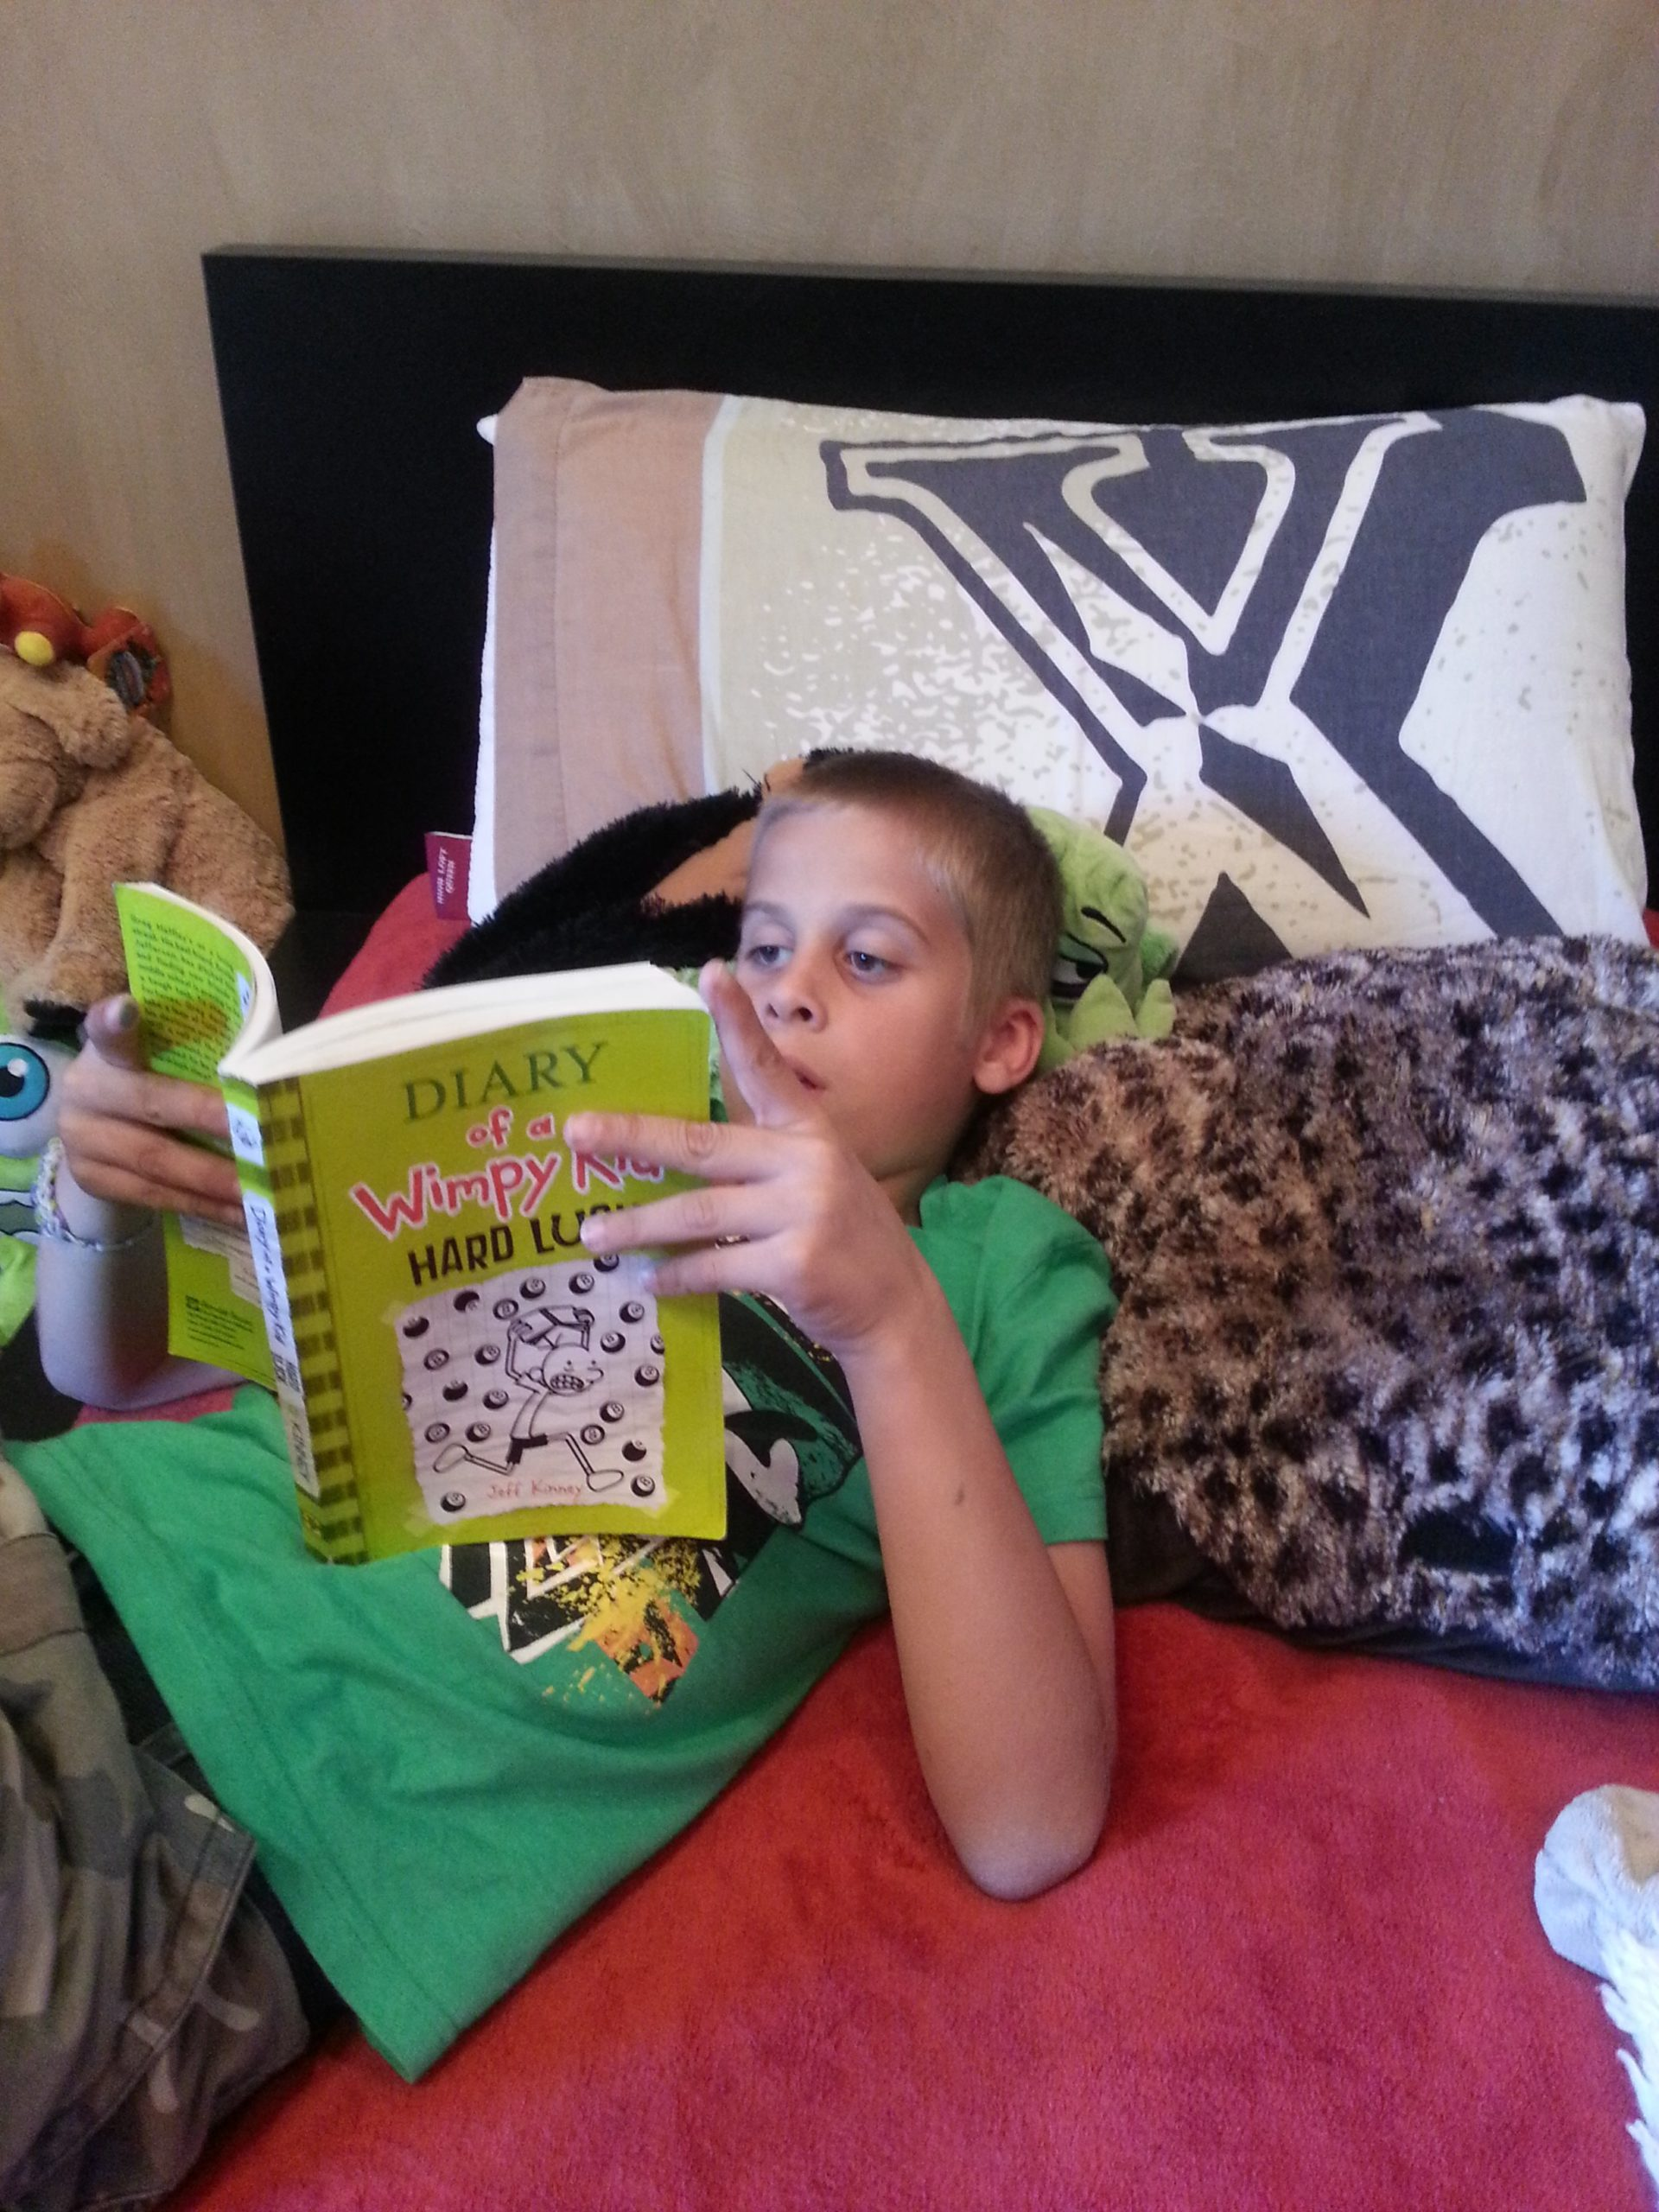 #Matix loves #DiaryofaWimpyKid #youngreaders #PowellPack